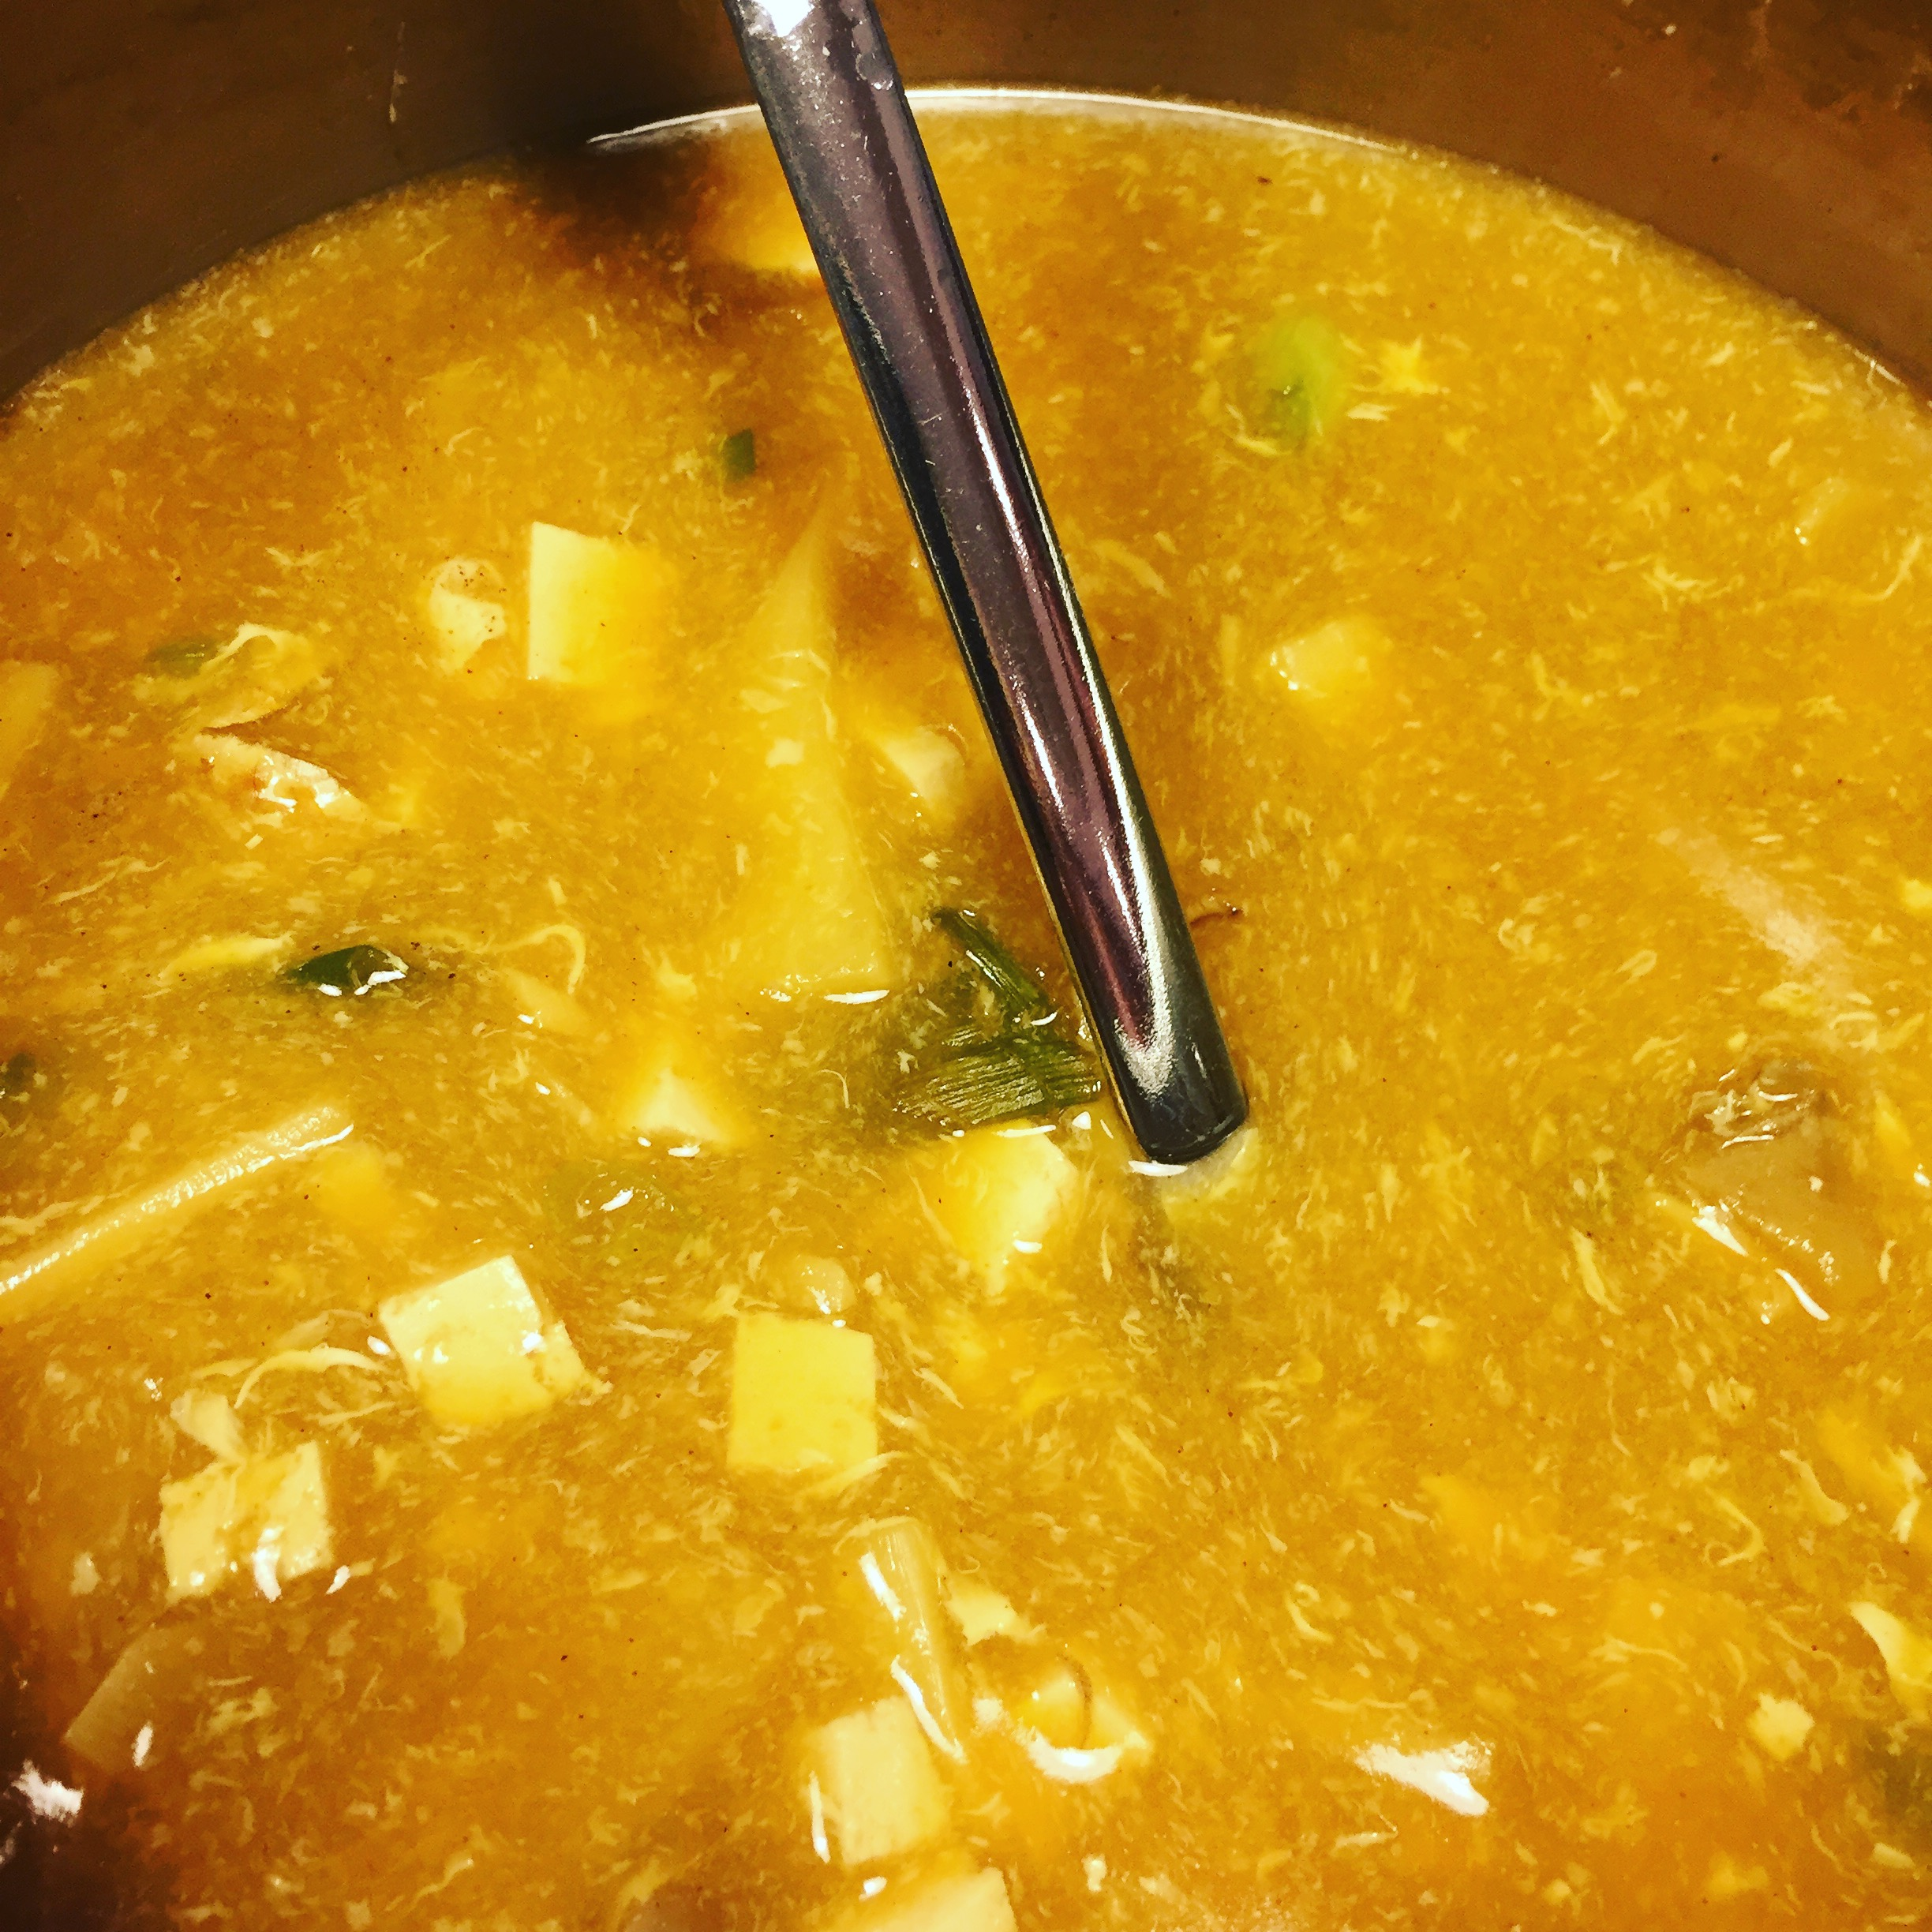 Yummy Healing Goodness in this pot of Vegetarian Hot and Sour Soup!